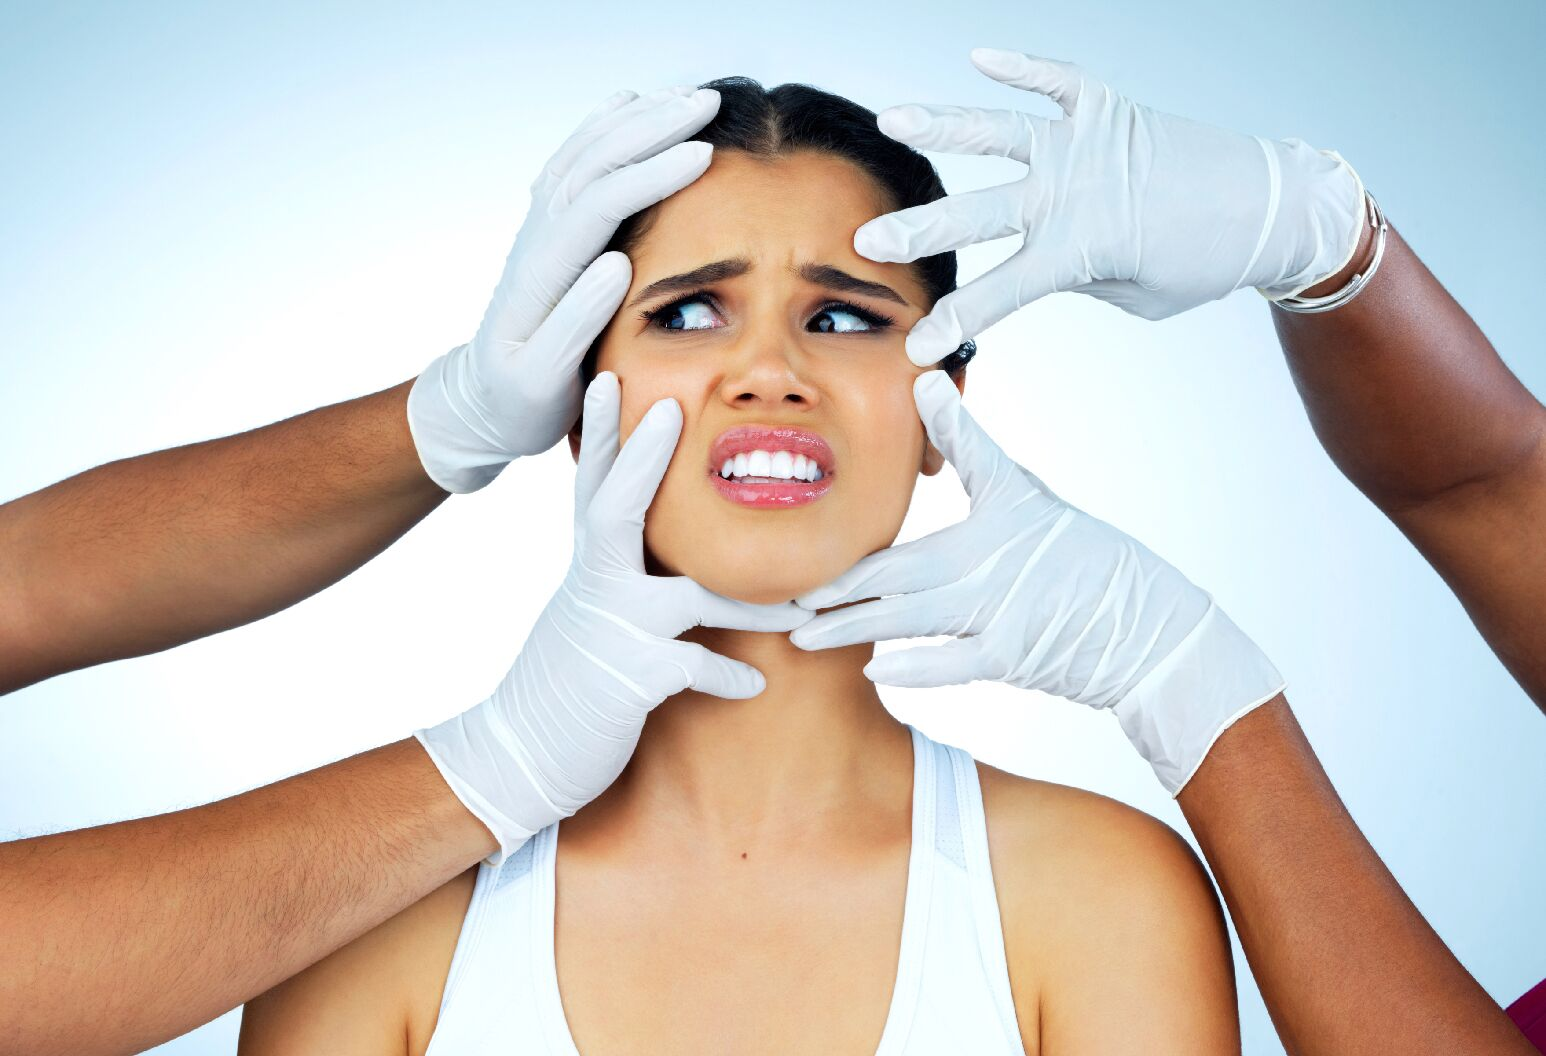 woman's face being touched by multiple hands with surgical gloves on.